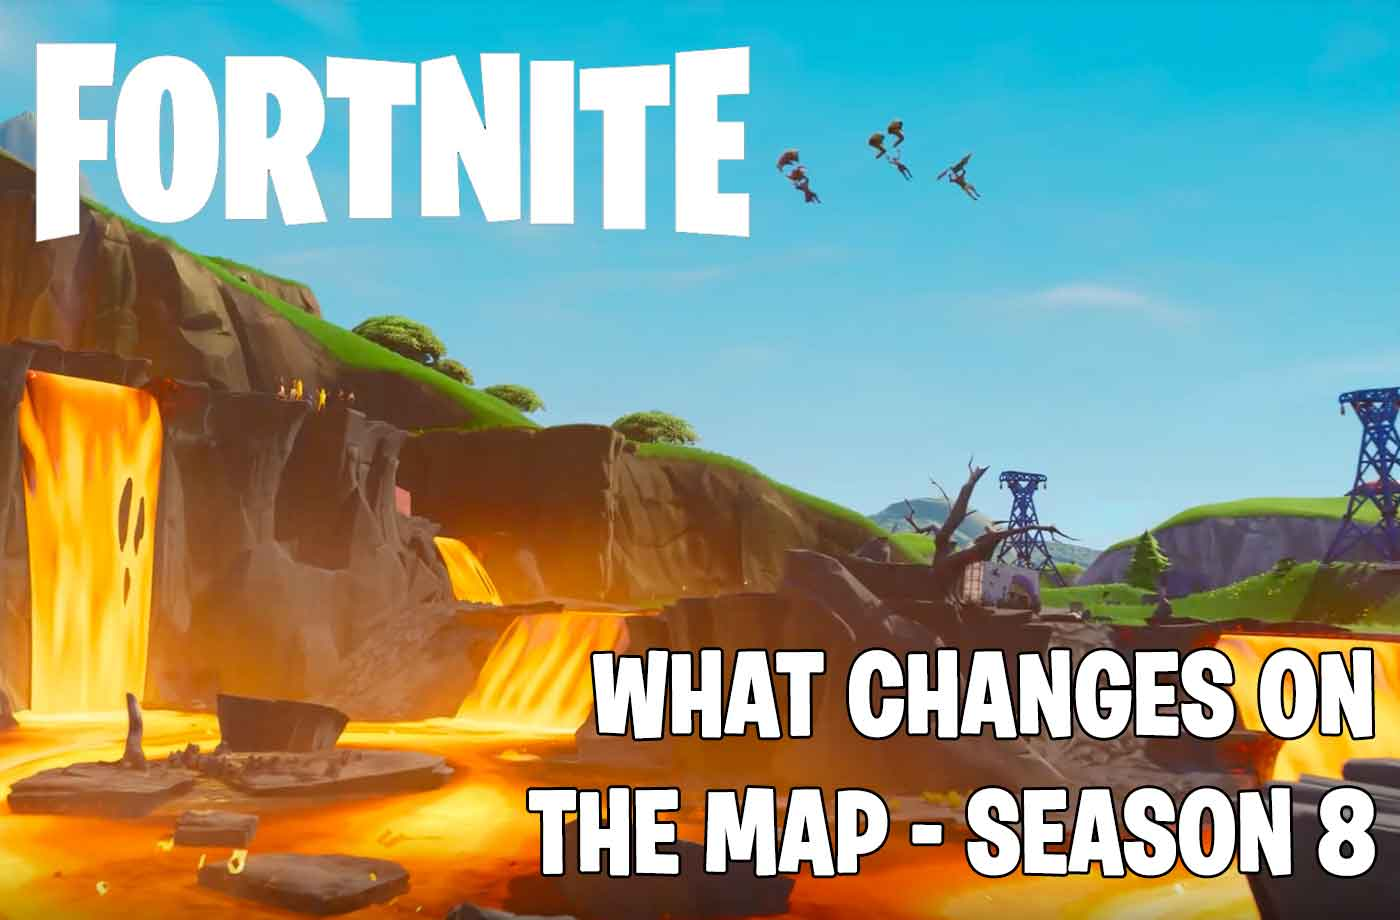 Fortnite Season 8 Several Changes On The Map With A Volcano